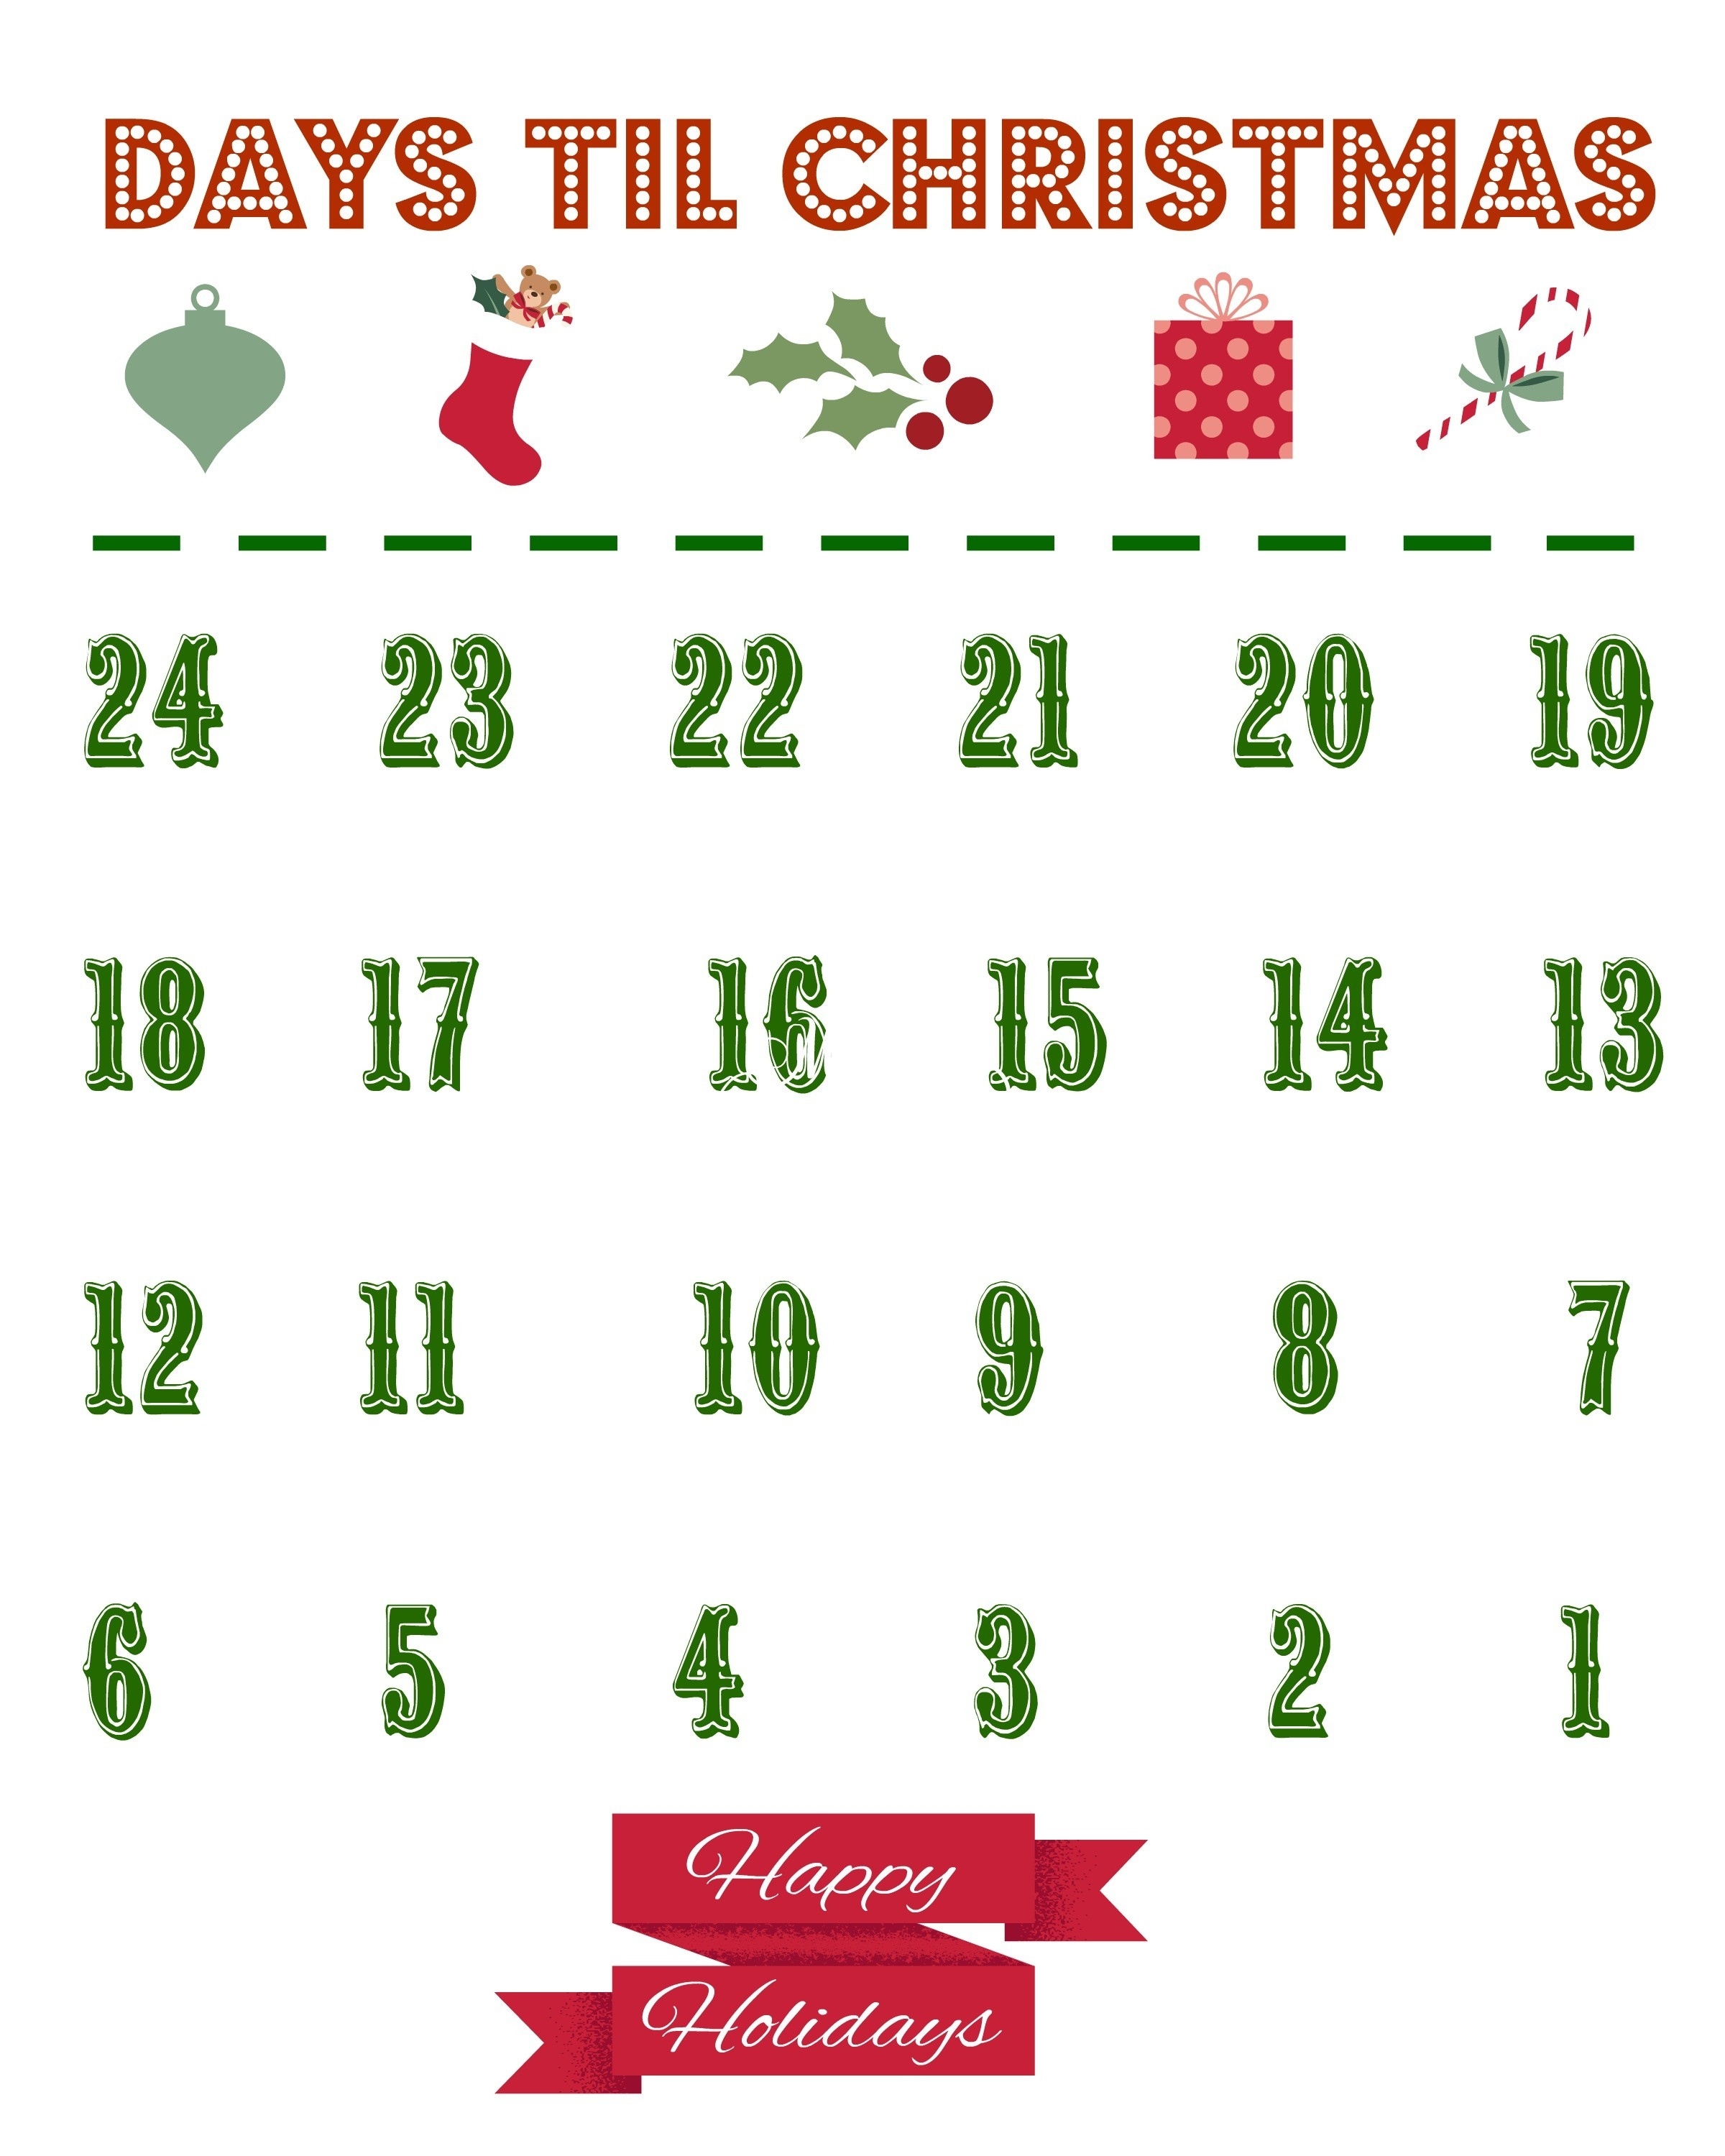 Count Down Calendars – Name-Printable Holiday Countdown Calendar Template